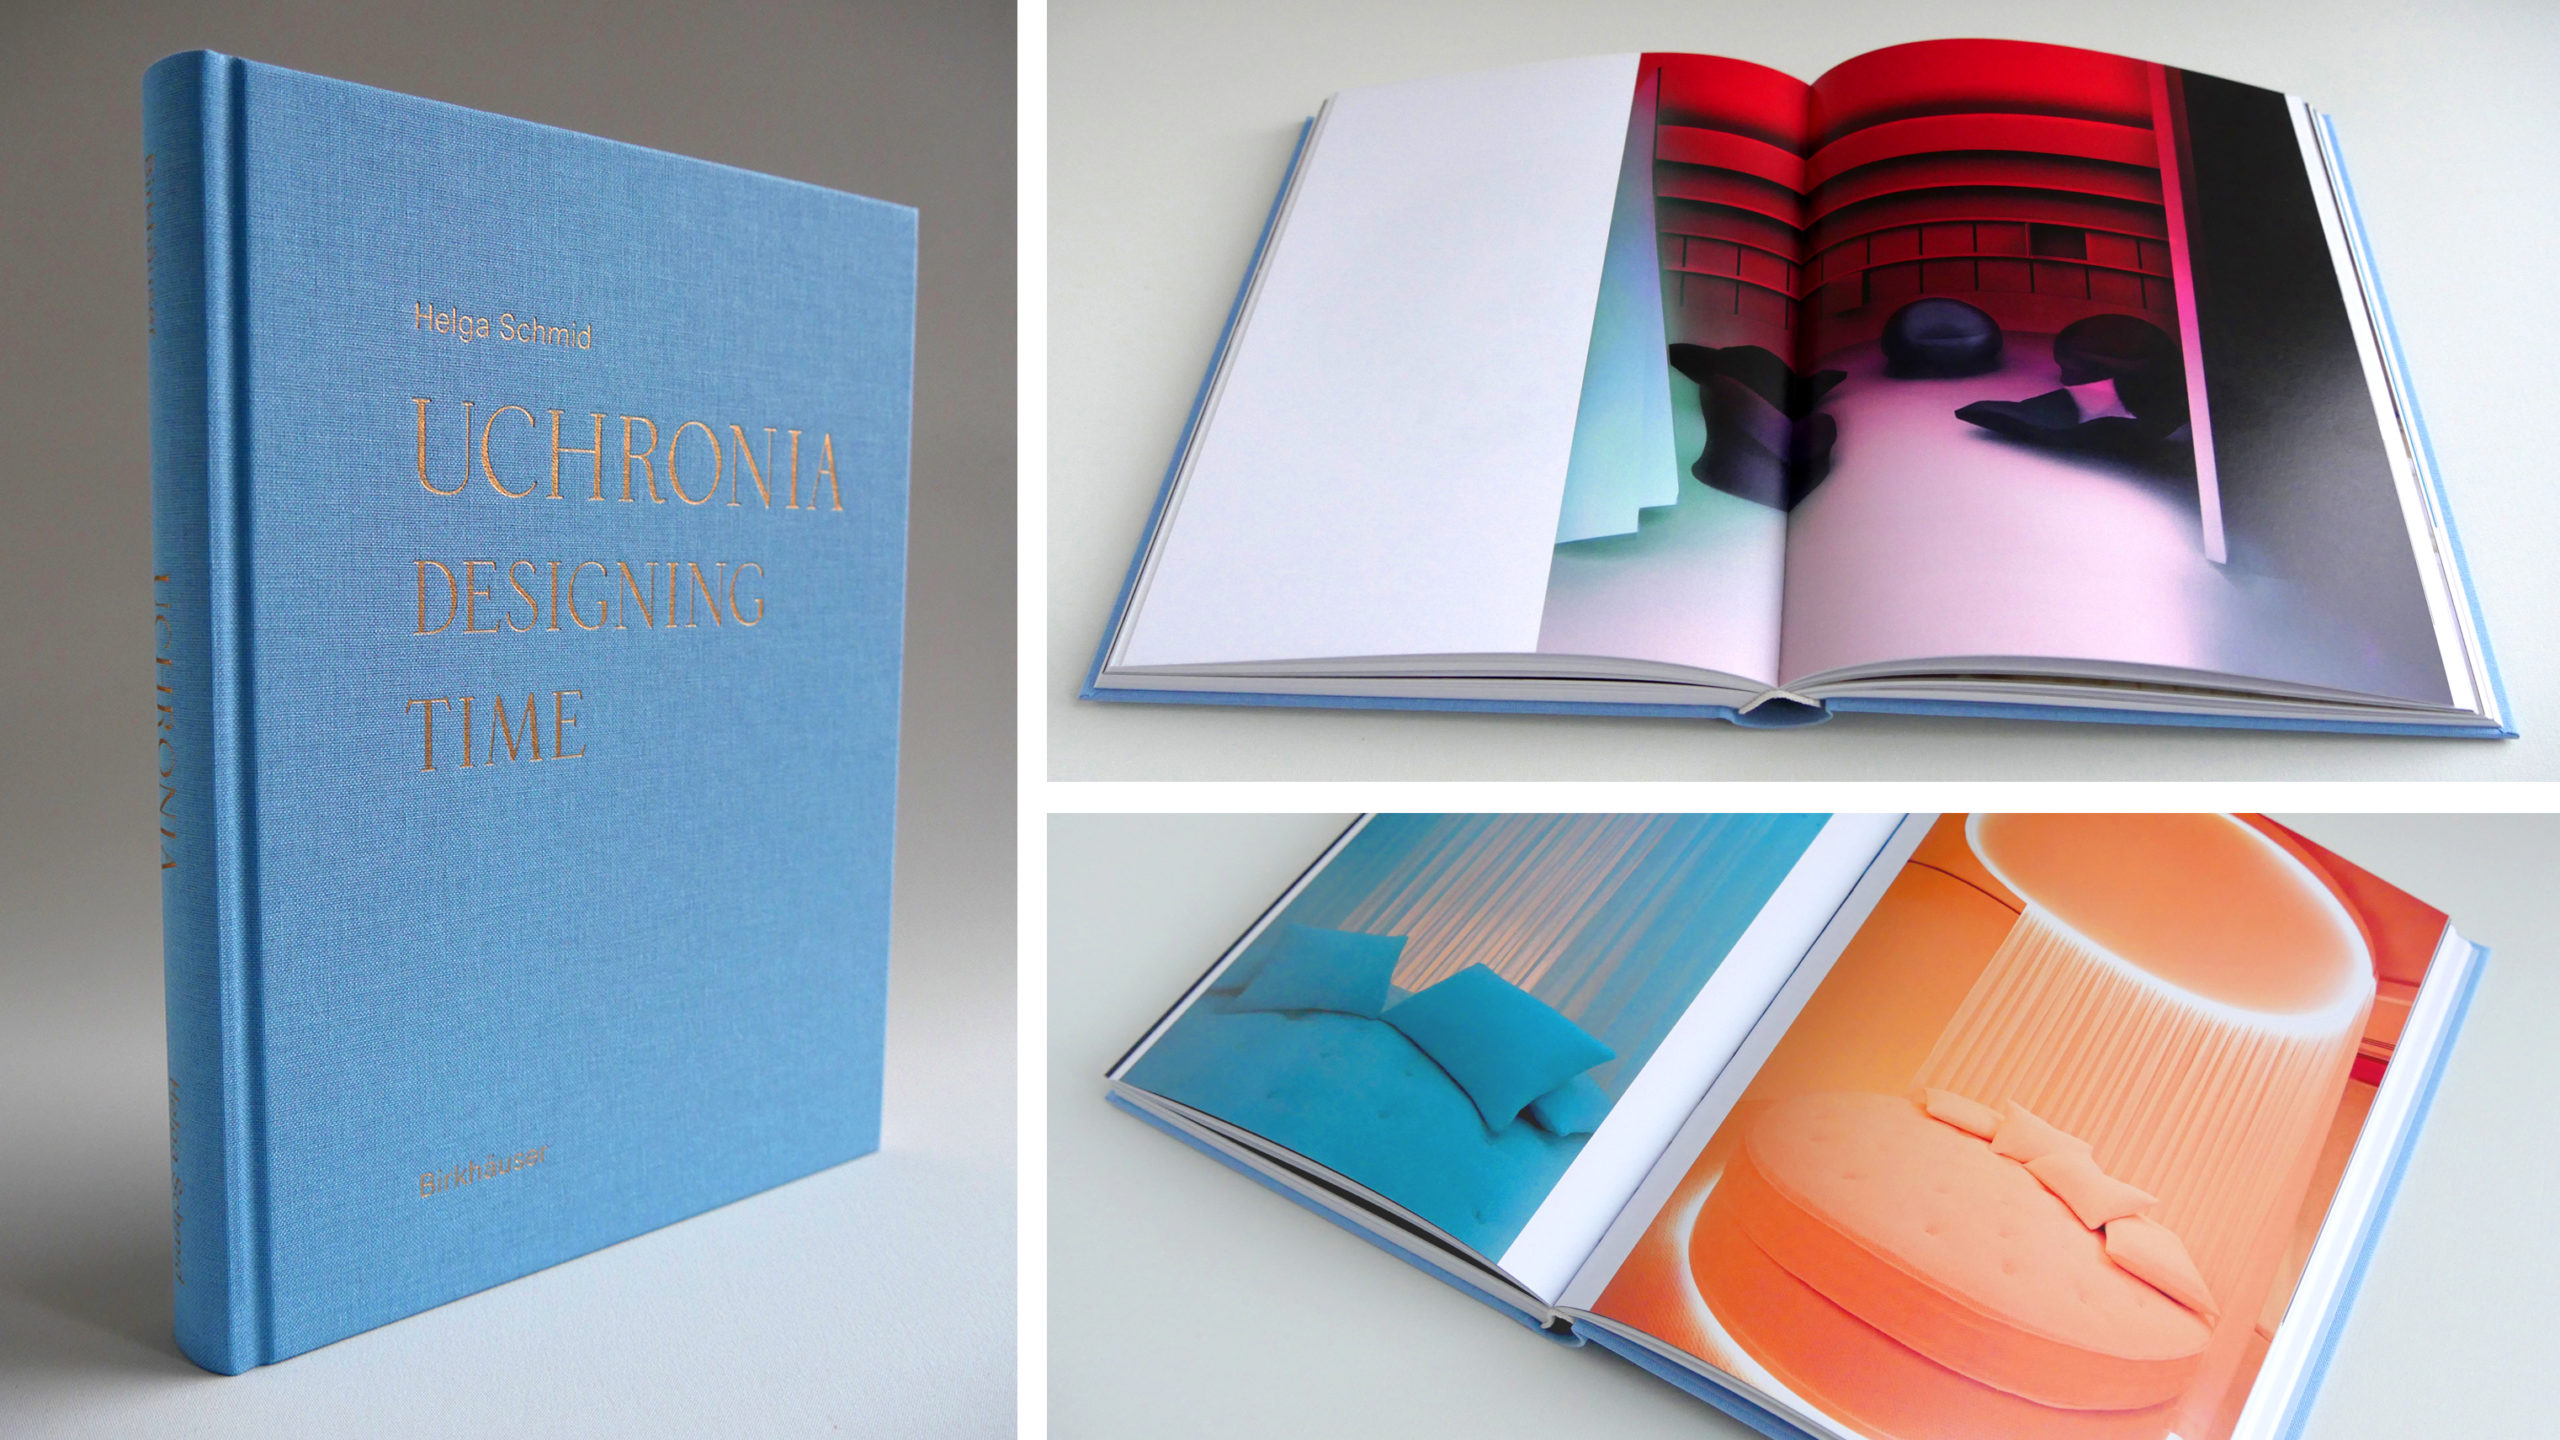 cover and inside pages of Uchronia book